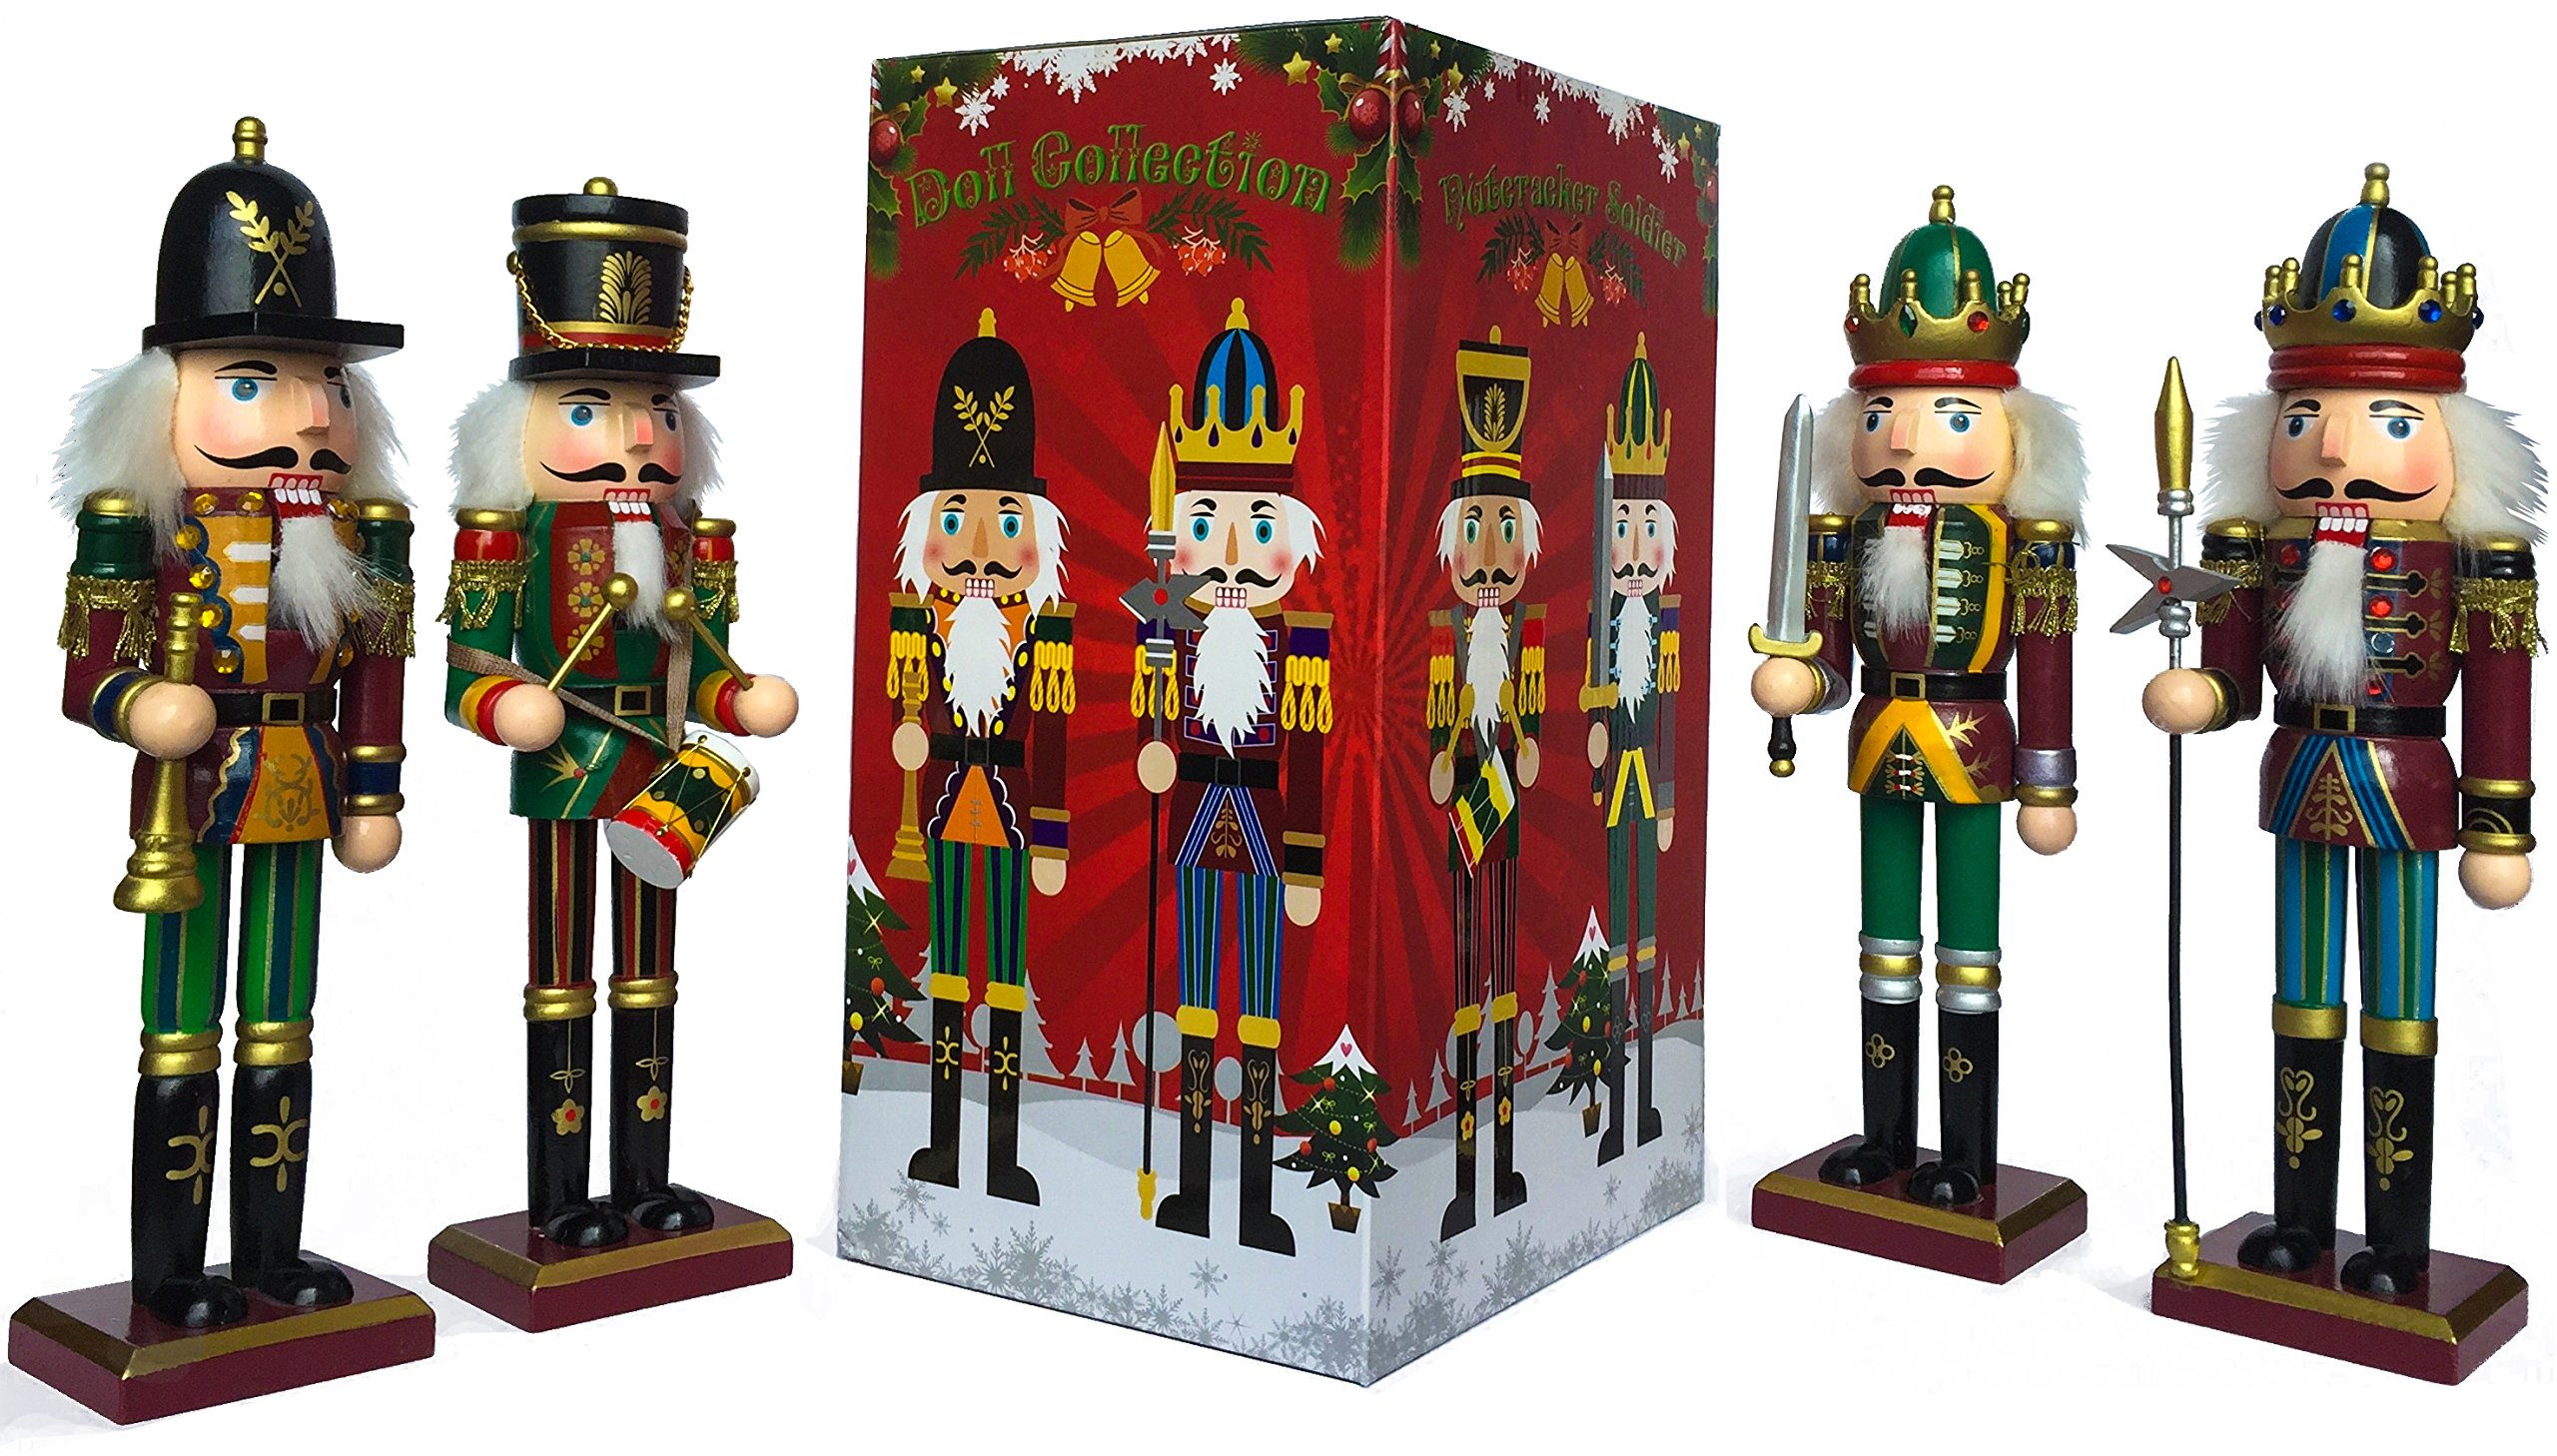 Nutcracker Soldiers Gift Set from Spring Country | Great Decoration Figure Collection to Share a Memory with | Christmas | New Wooden Puppets | 12 inch Toys Holiday Ornament | 4 Pieces Toy Set by Spring Country